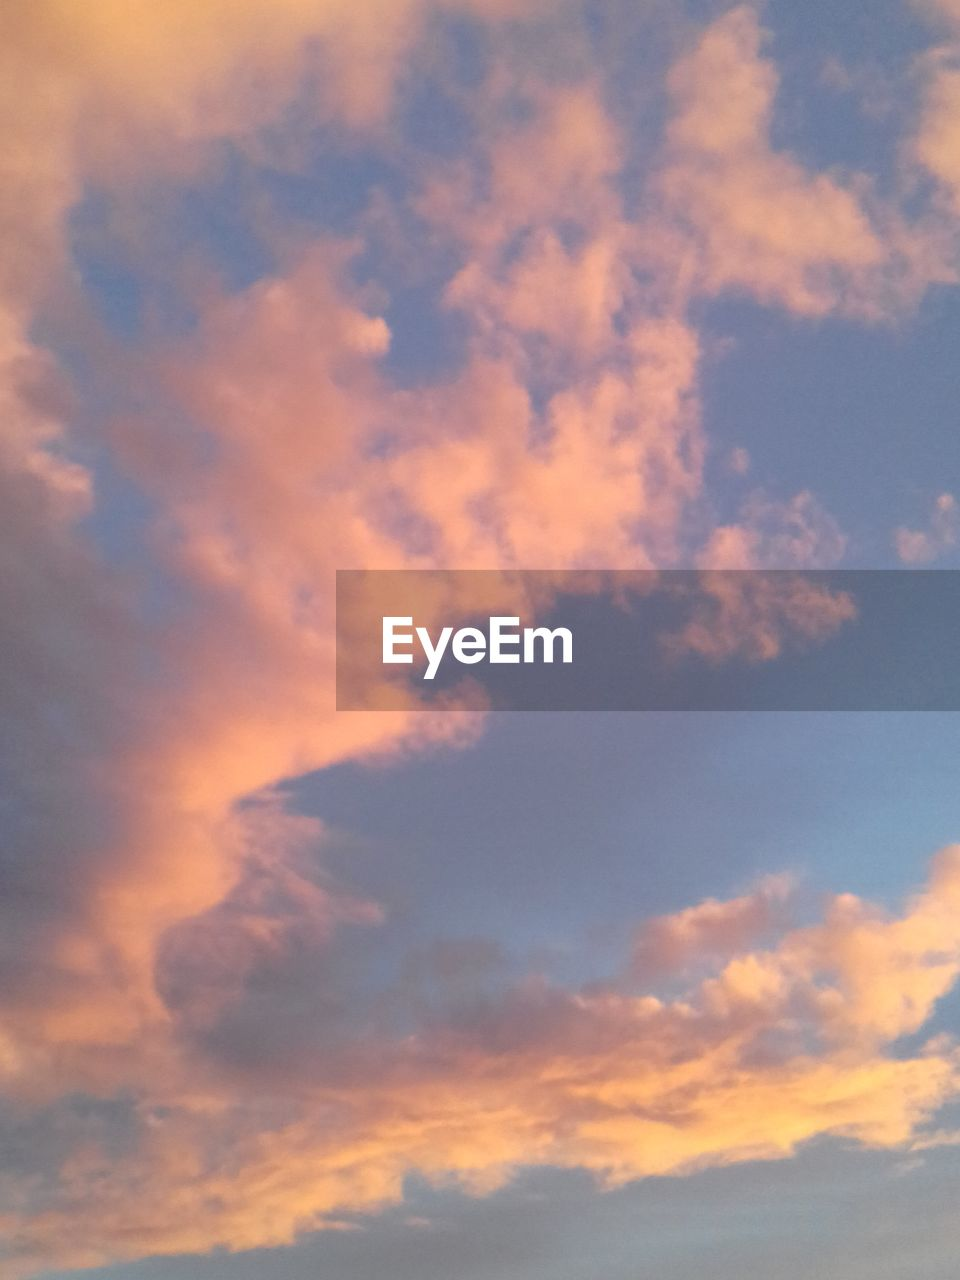 nature, beauty in nature, sky, sunset, scenics, cloud - sky, low angle view, tranquility, sky only, backgrounds, no people, tranquil scene, outdoors, day